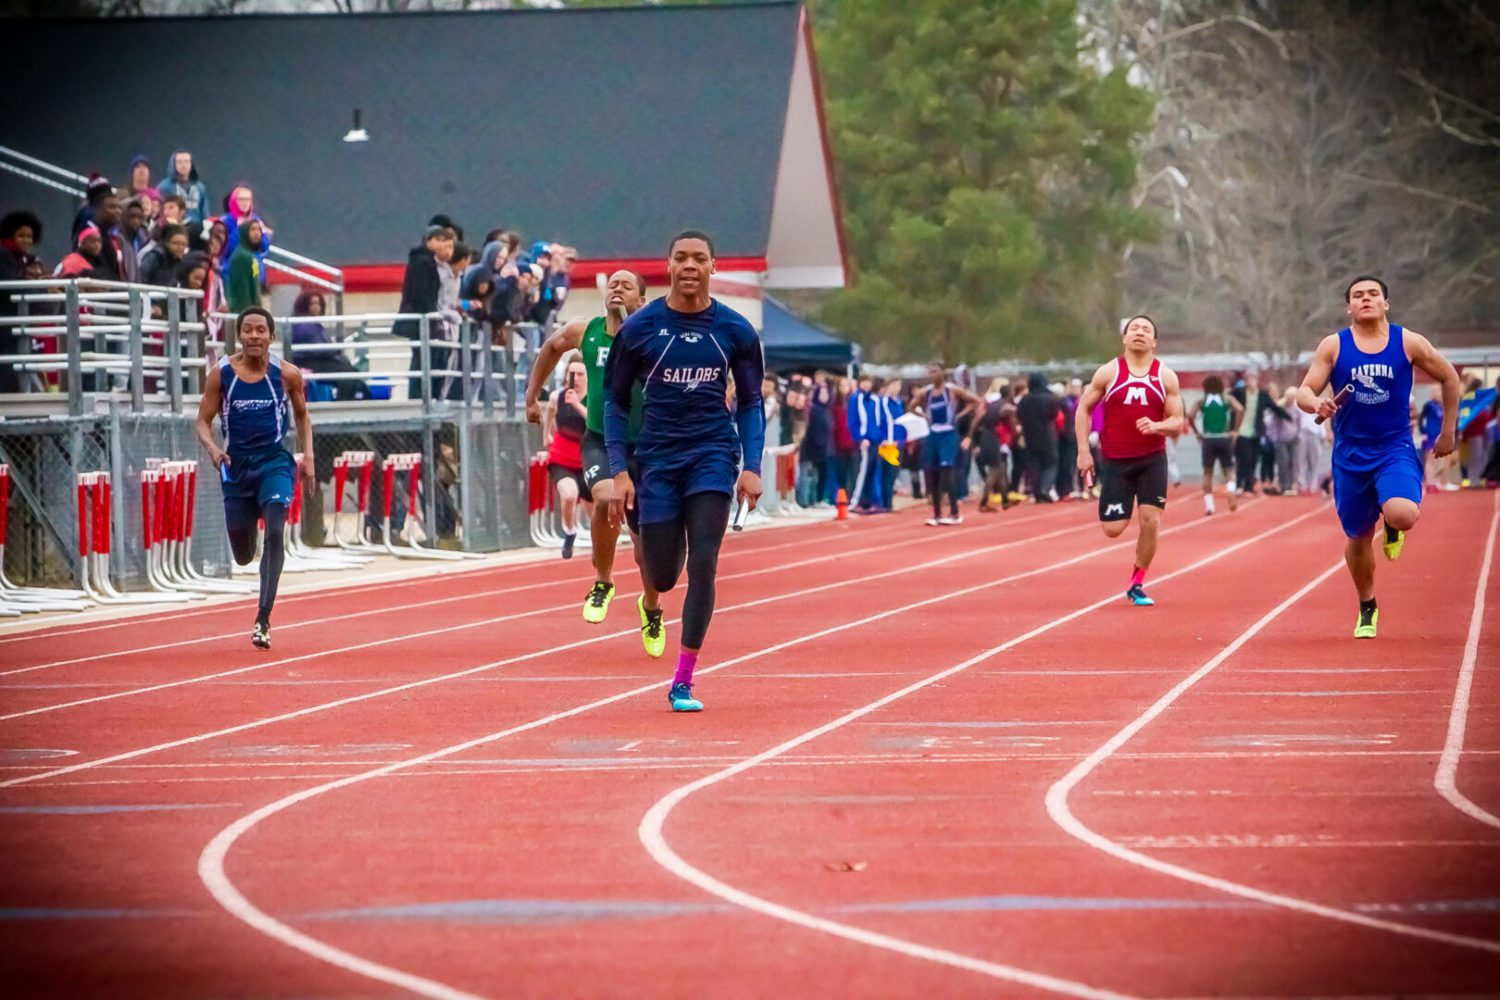 Final entry list for Wednesday's West Michigan All-Star Meet at Reeths-Puffer High School